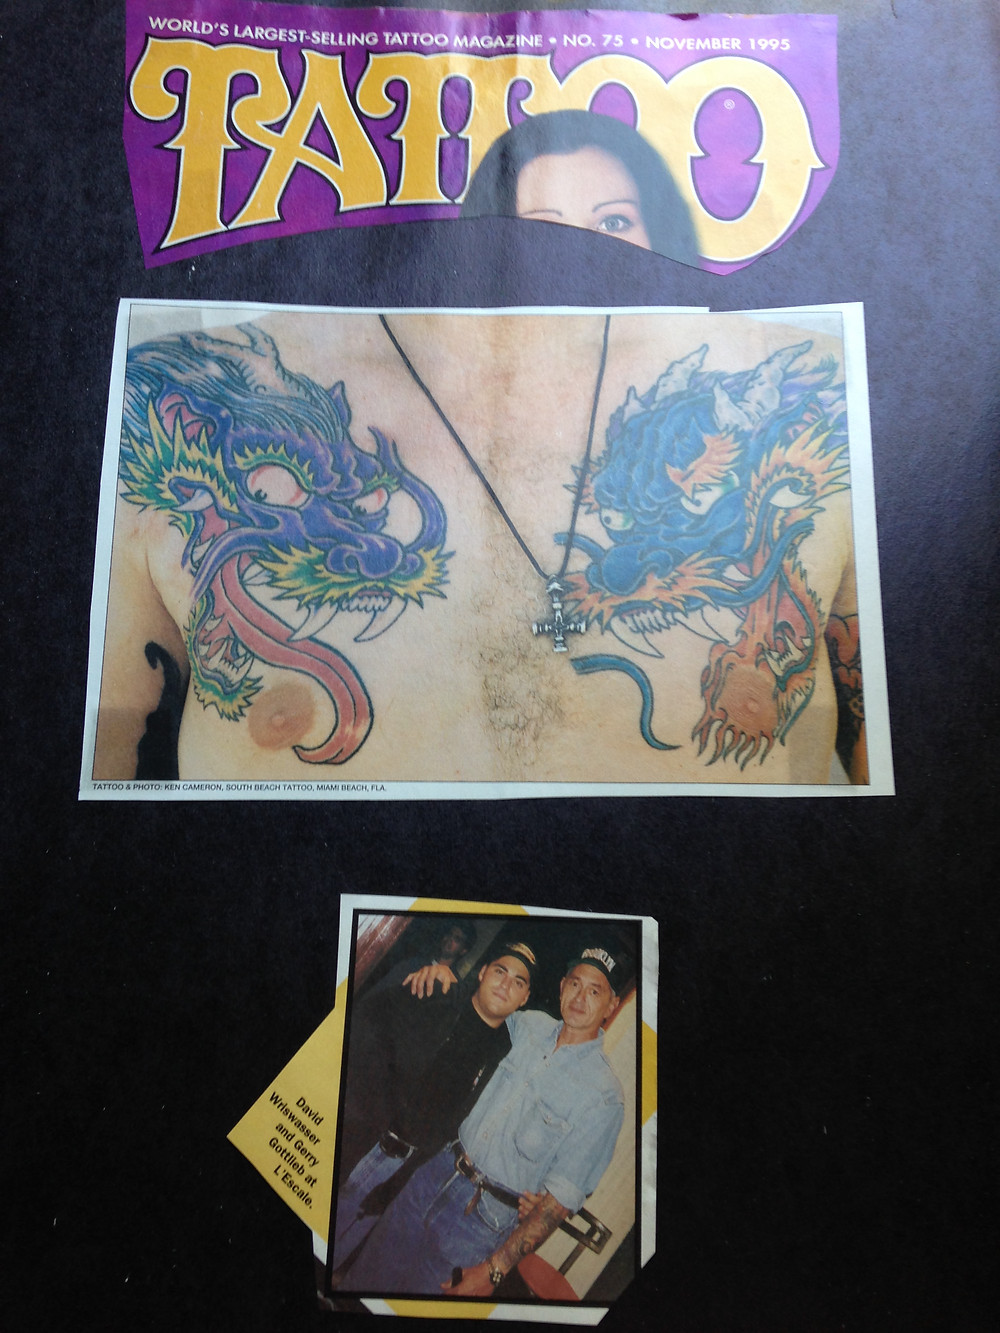 Tattoo Magazine November 1995